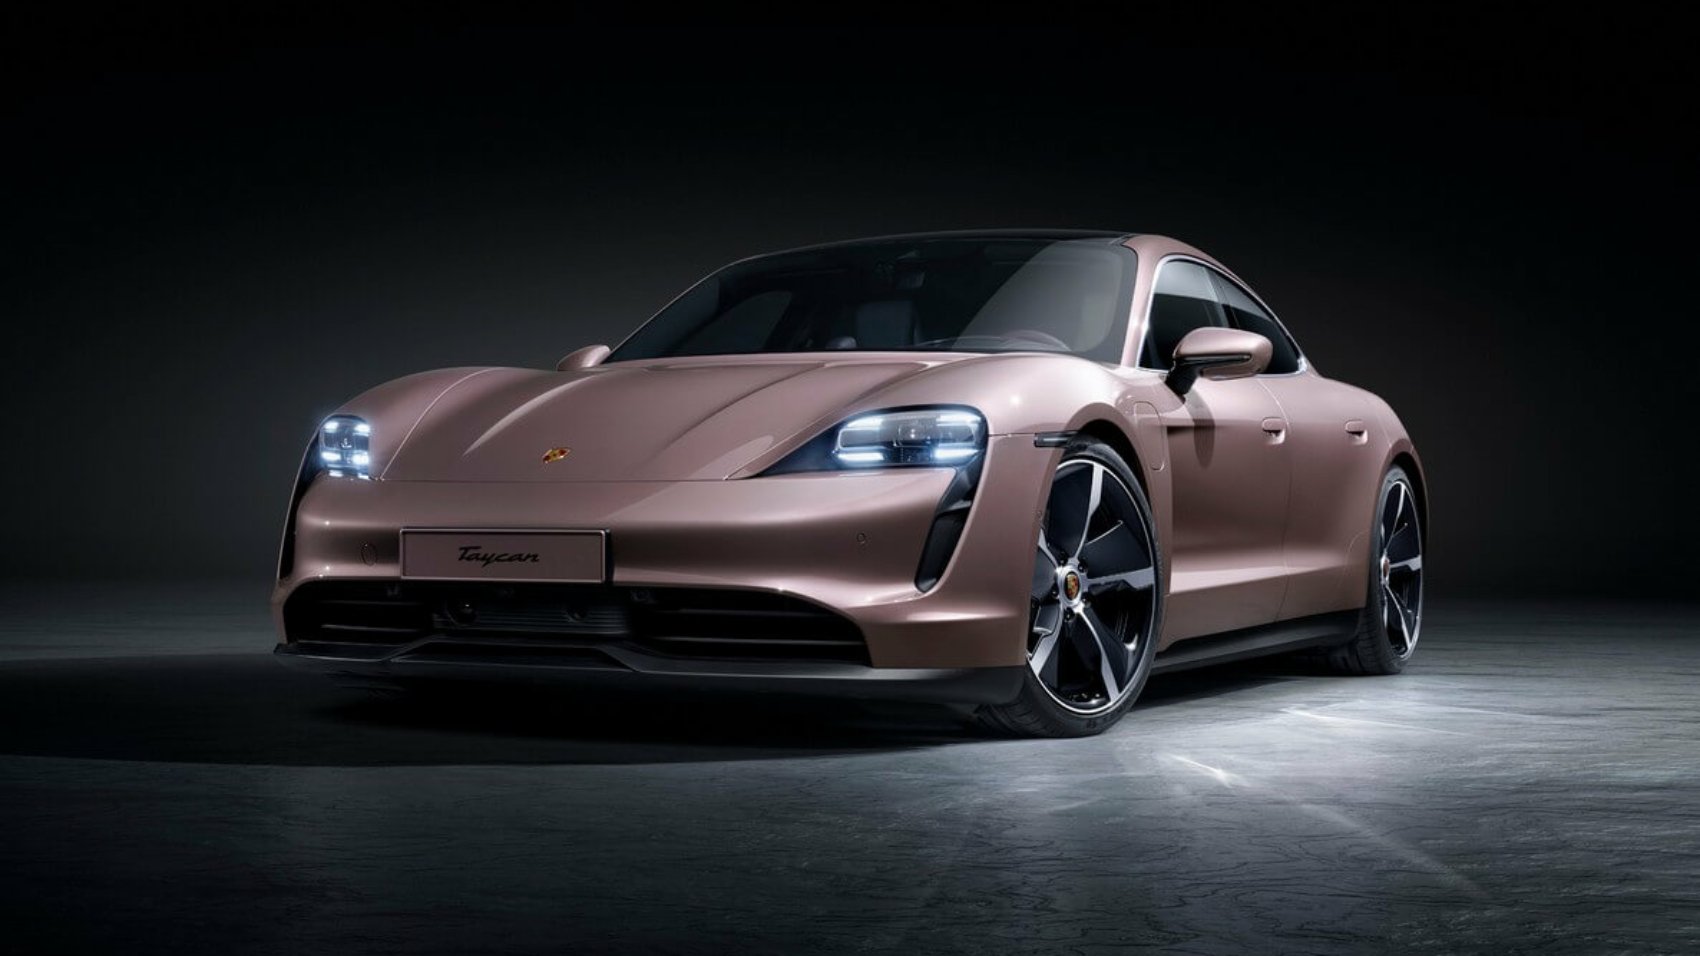 2021 Porsche Taycan base model with rear-wheel drive